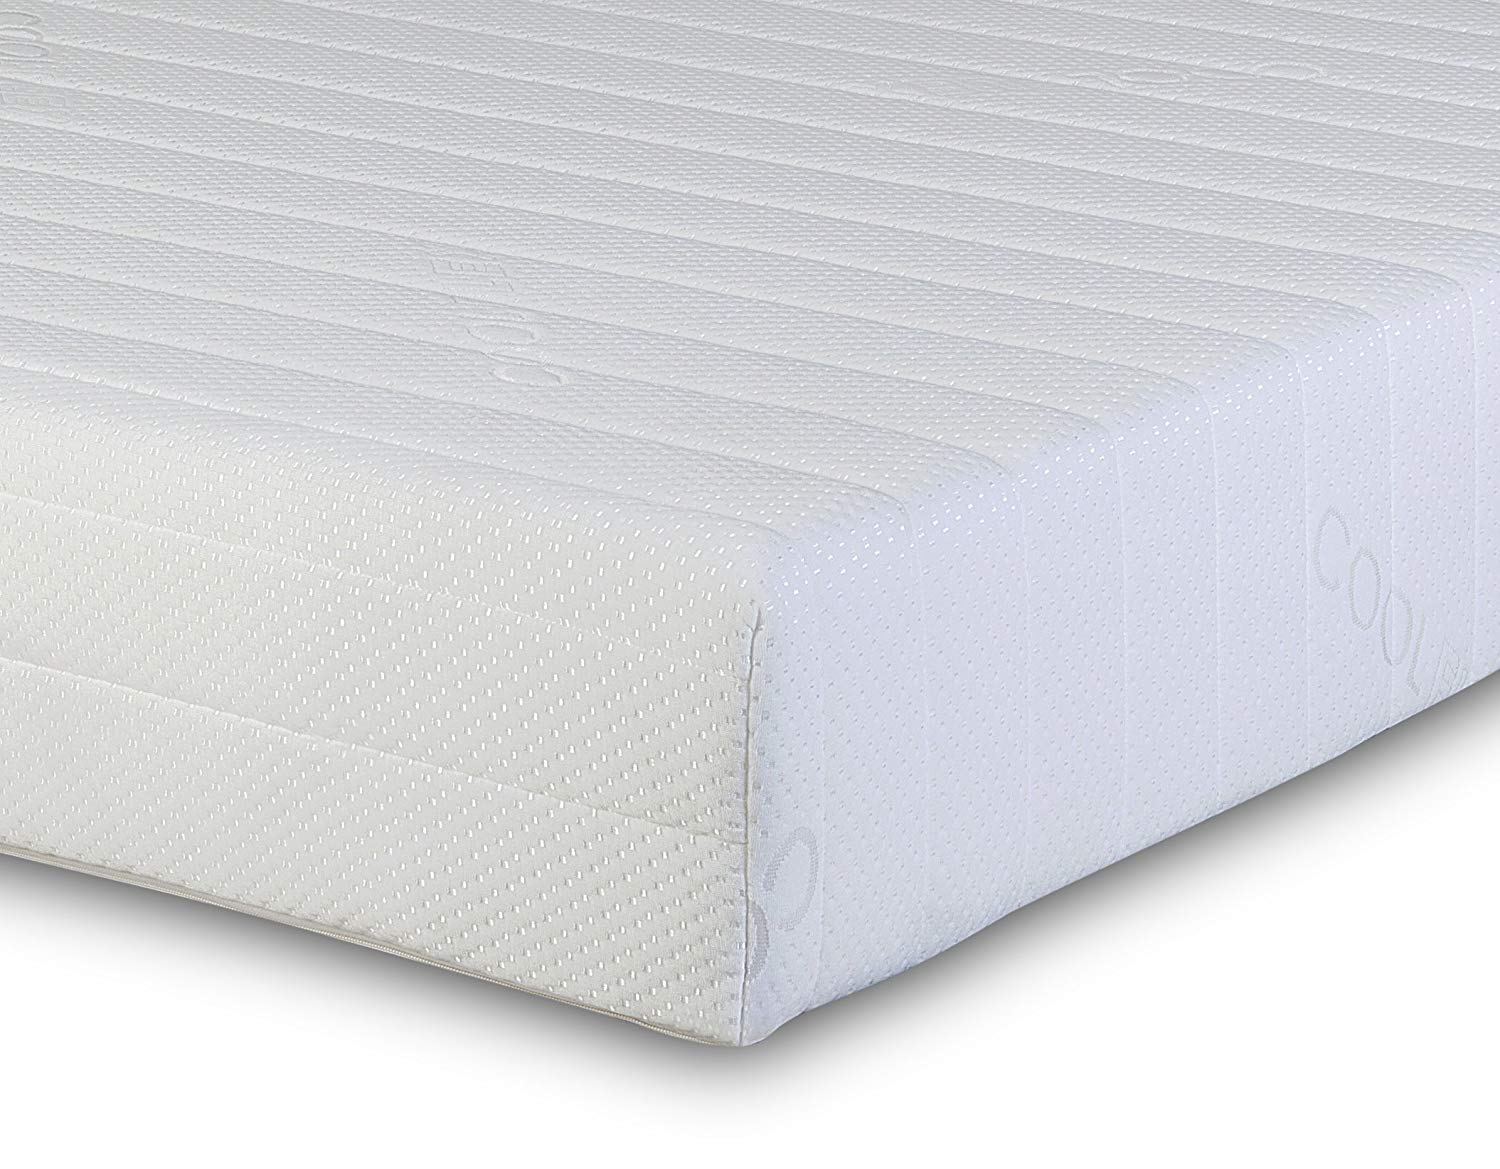 Visco Therapy Memory Foam Reflex 3 Zone Rolled Mattress Quilted Maxi-Cool Cover 2 Pillows – King